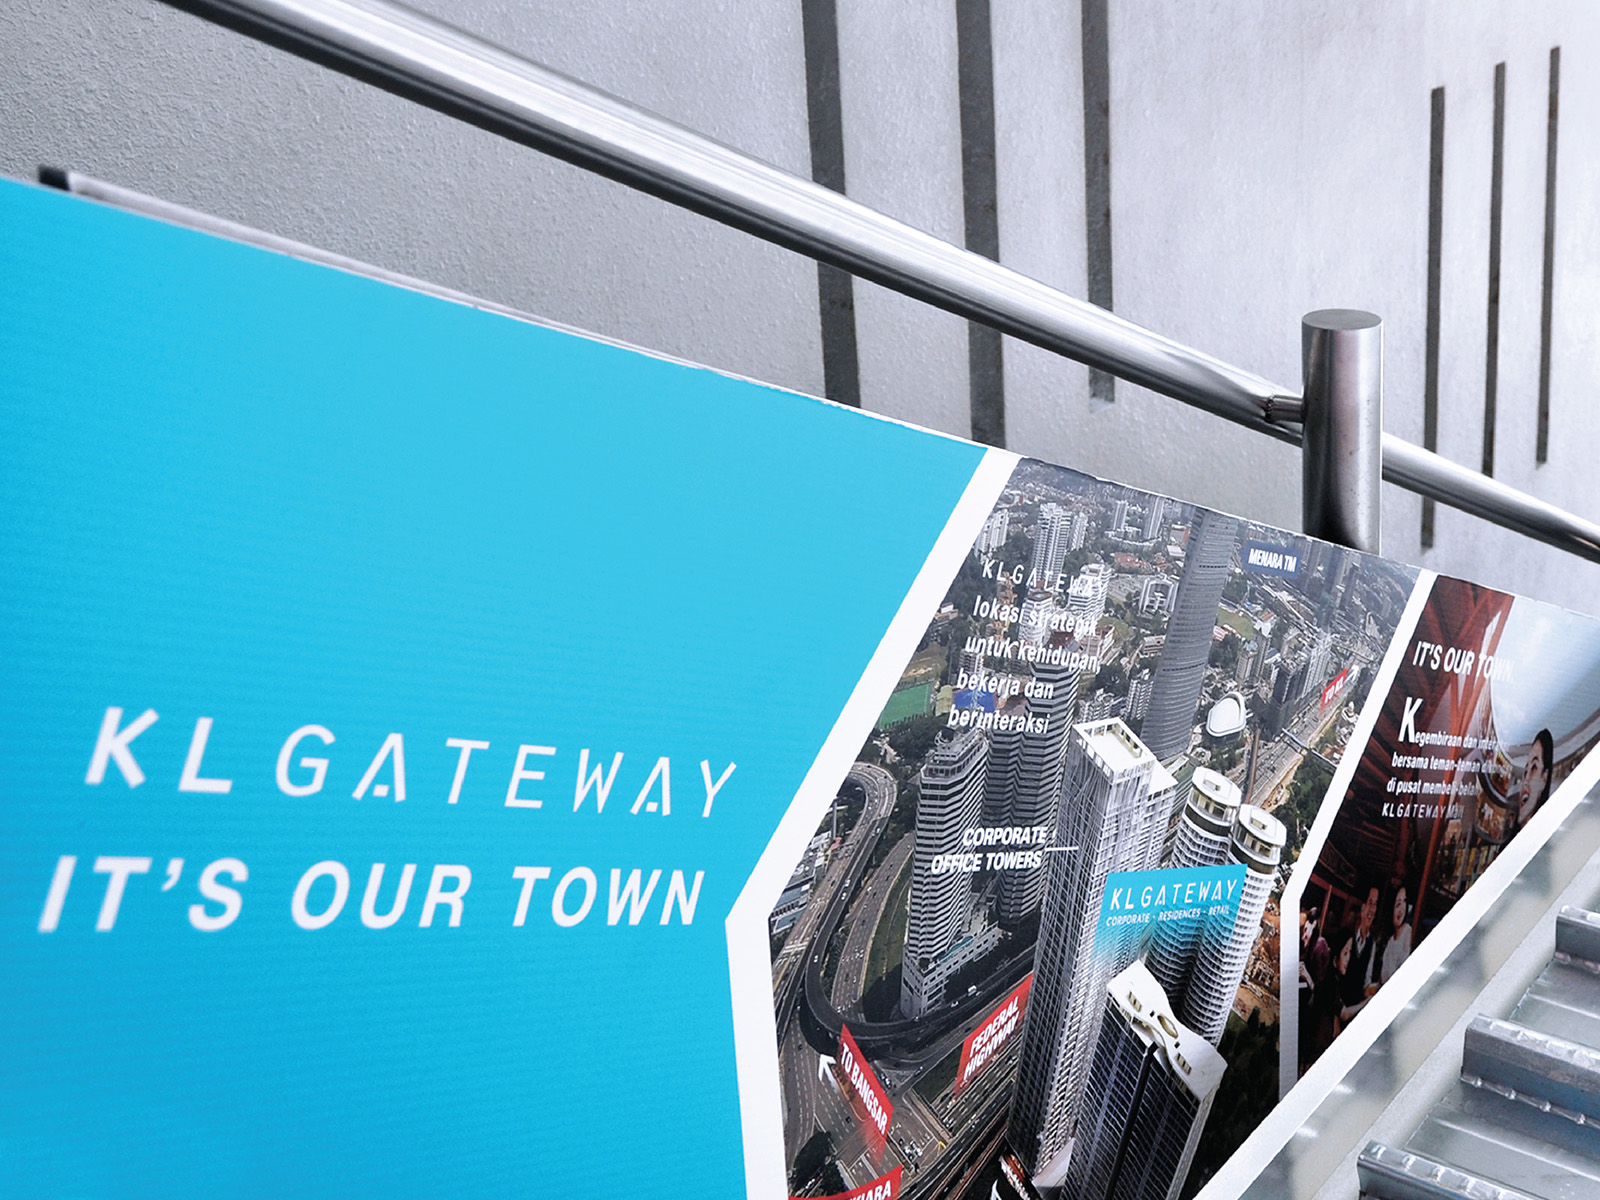 KL Gateway by Suezcap train station brand advertisement takeover with brand ads on handrail panels showing the transformation that is coming to the nearby vicinity